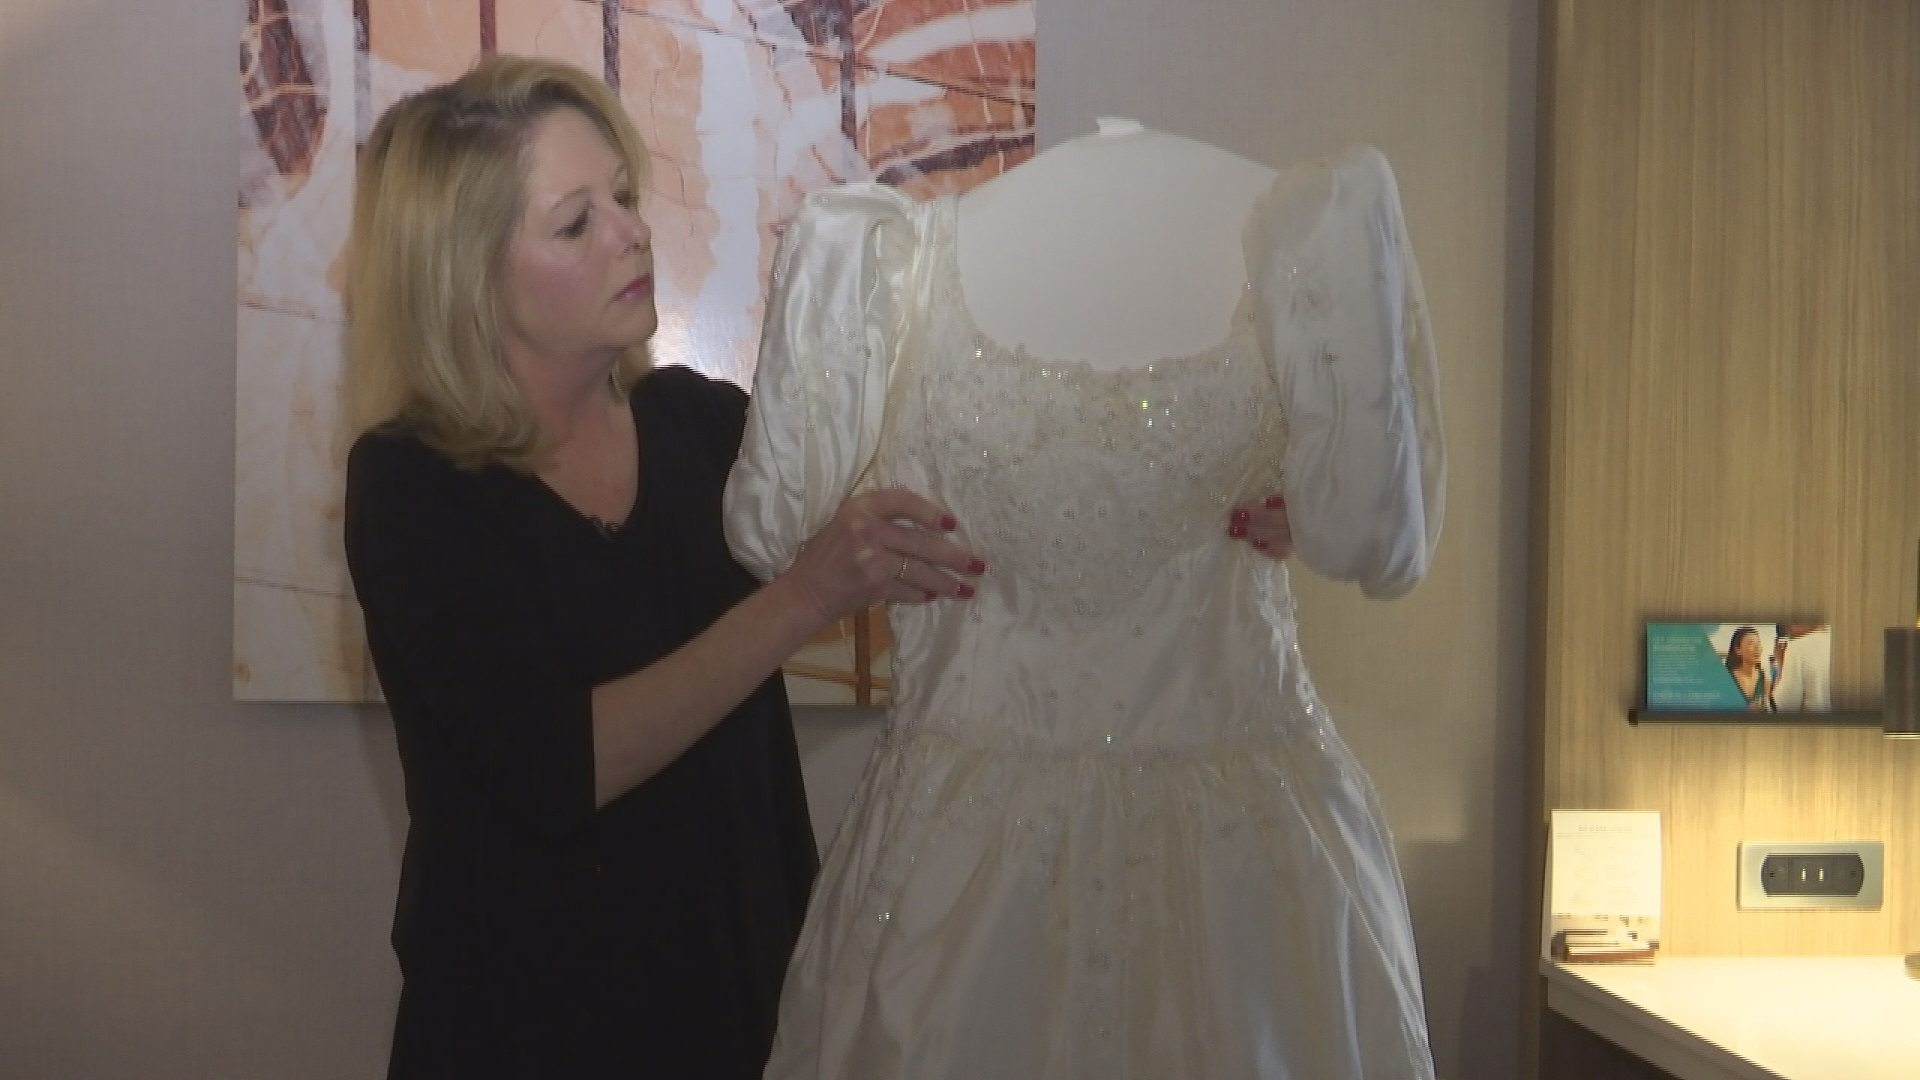 Woman Preserves Wedding Dress 30 Years Later Opens Box And Finds